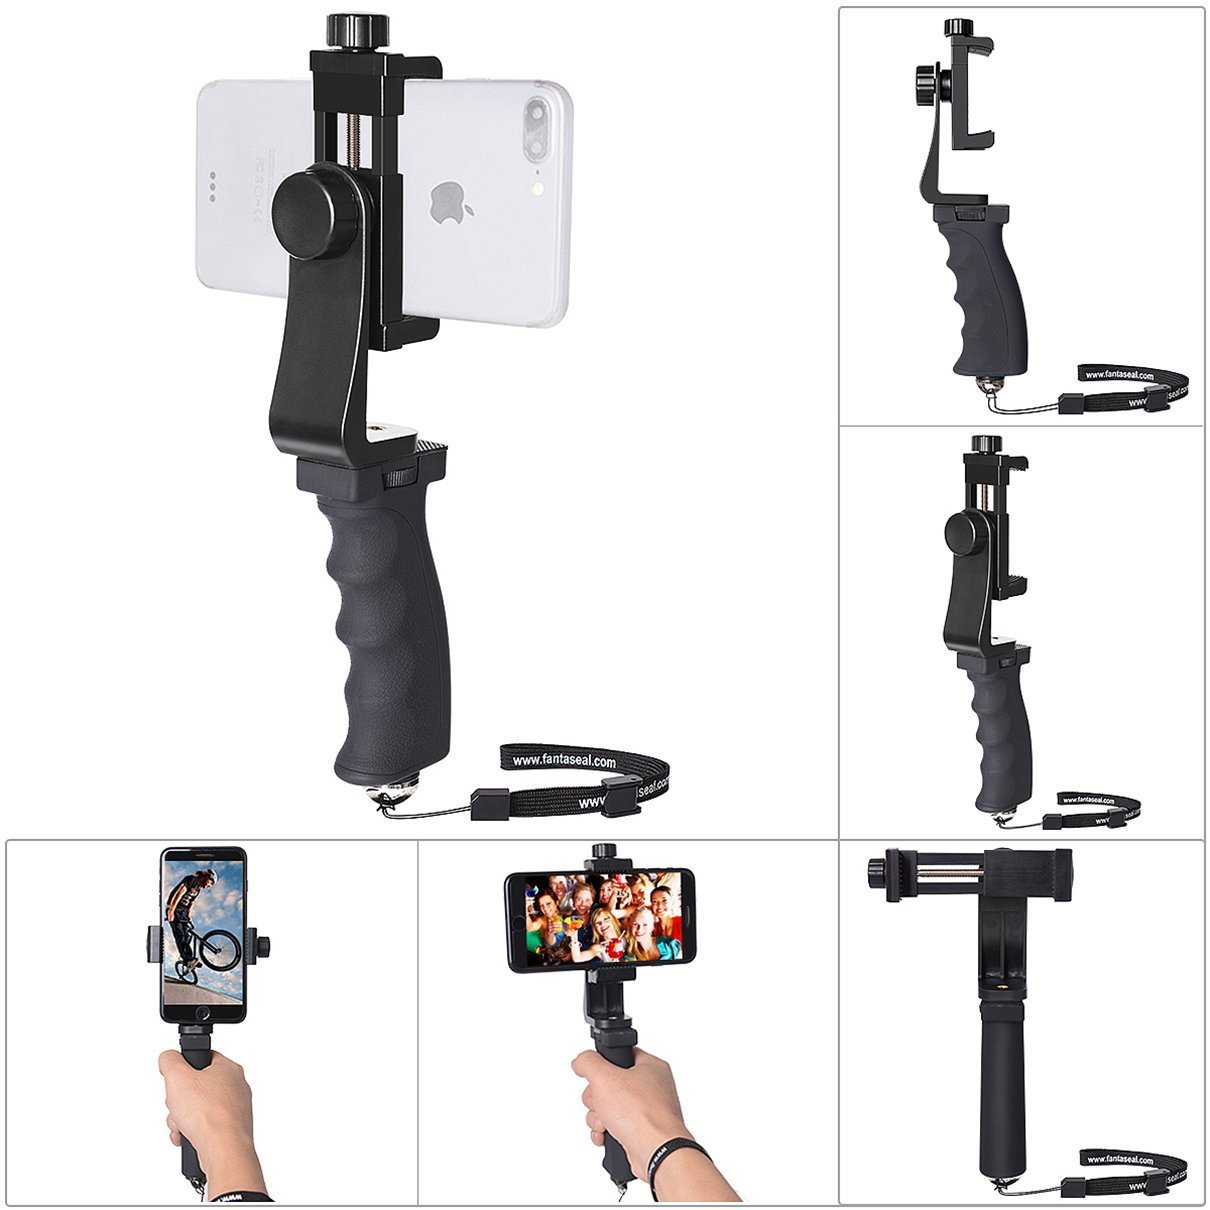 Cell Phone Stabilizer Hand Grip Holder Smartphone Handle Phone Holder Support Selfie Stick Compatible for iPhone X 8+ 8 7+ 7 6S+ 6S 6+ 6 5 5SE 4 Galaxy Note 8 S8 etc Landscape + Portrait Mode